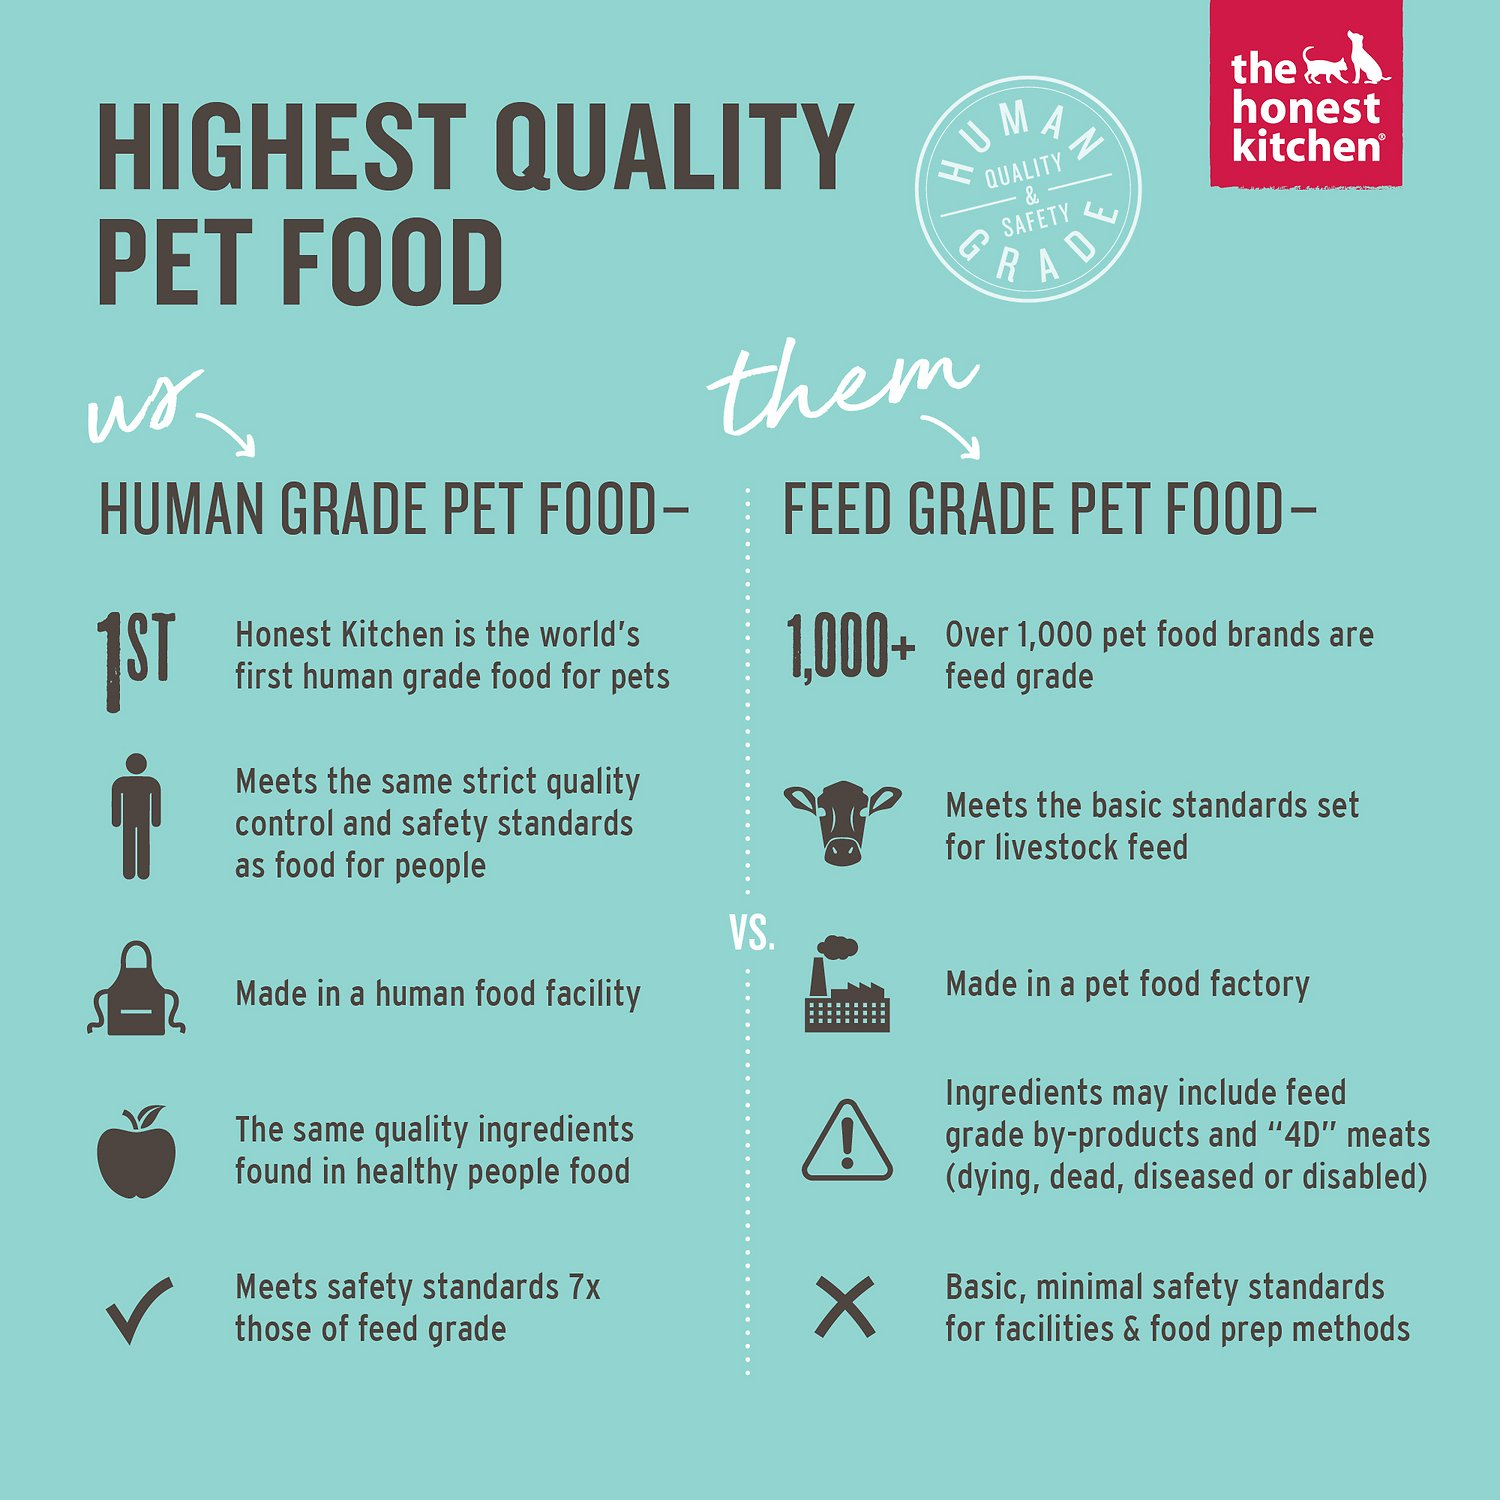 Top 10 Best Dog Food Brands – ALL HAVE REAL MEAT AS THE FIRST INGREDIENT: Orijen Dog Food, Taste of the Wild, Wellness Core Grain Free Formula, Nature's Variety Instinct, Blue Buffalo Wilderness, DR. HARVEY'S Canine Health Miracle Dog Food (This product needs you .